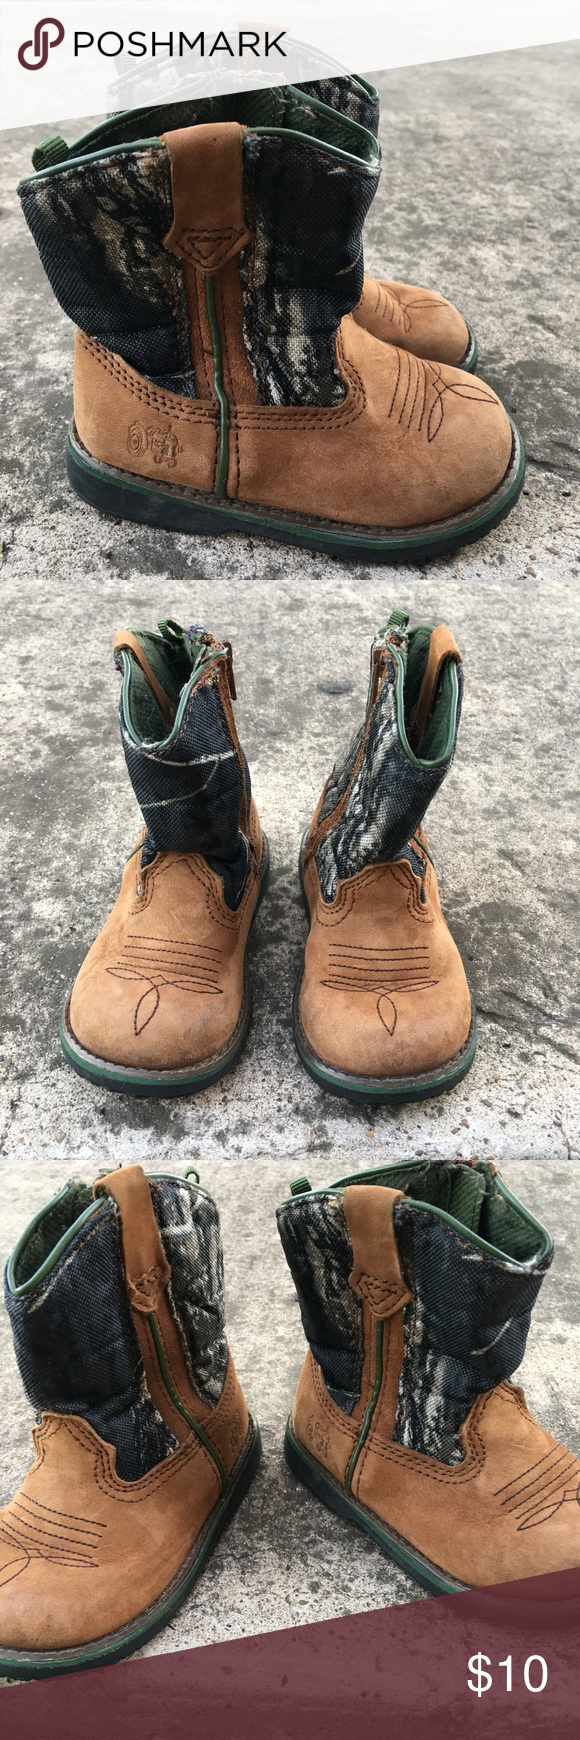 Johnson Deere Cowboy Boots for Kids Baby Boy/ Toddler Cowboy boots half camouflage and  brown - good condition John Deere Shoes Boots